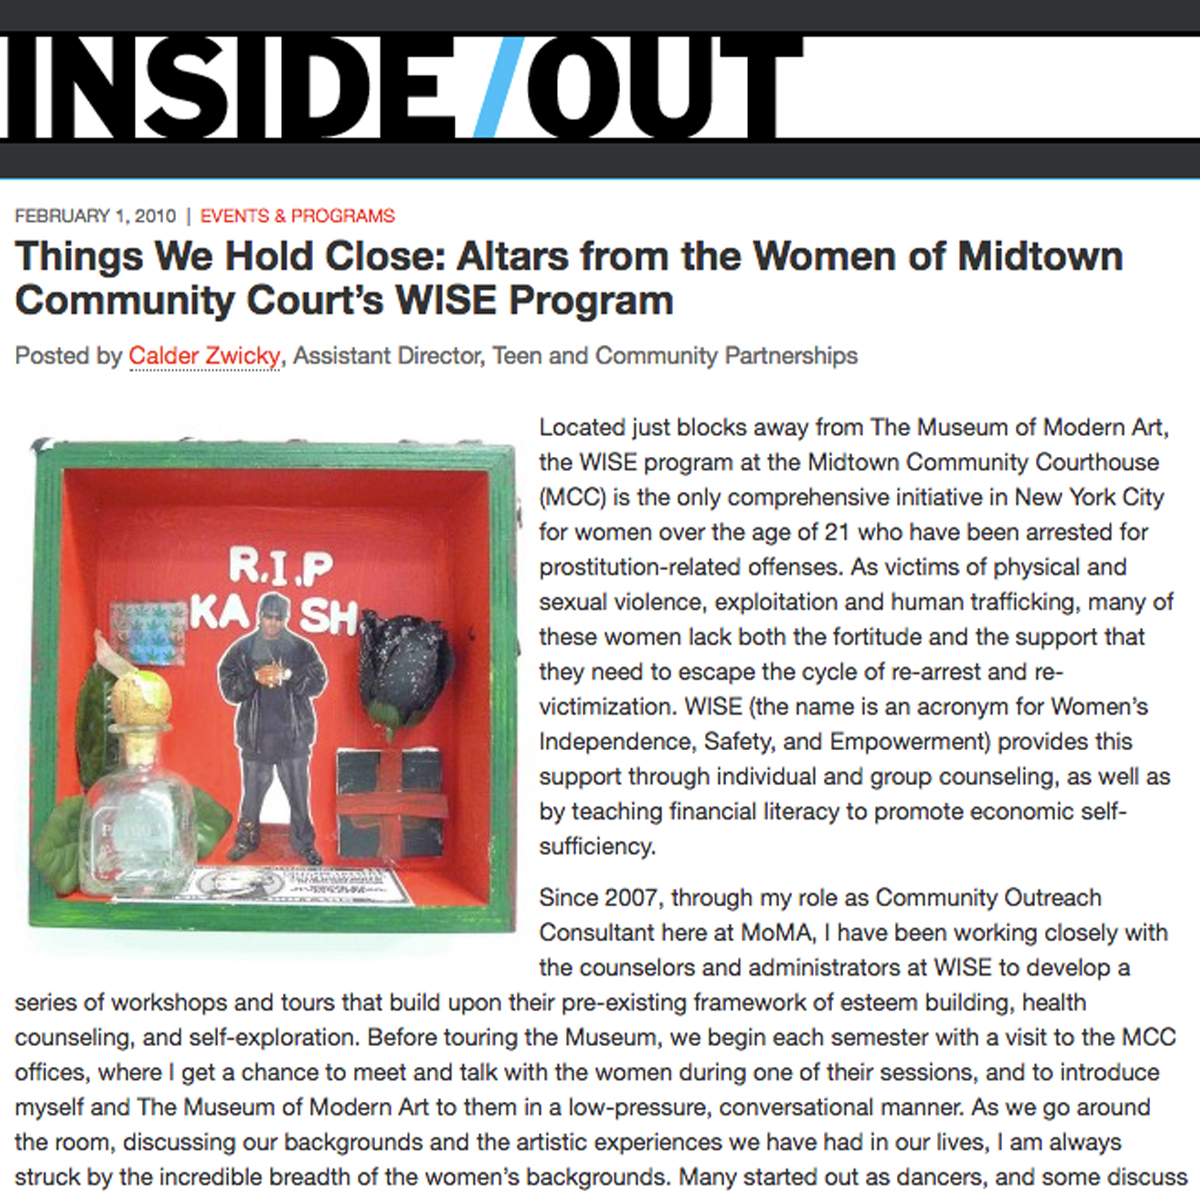 Things We Hold Close: Altars from the Women of Midtown Community Courts WISE Program